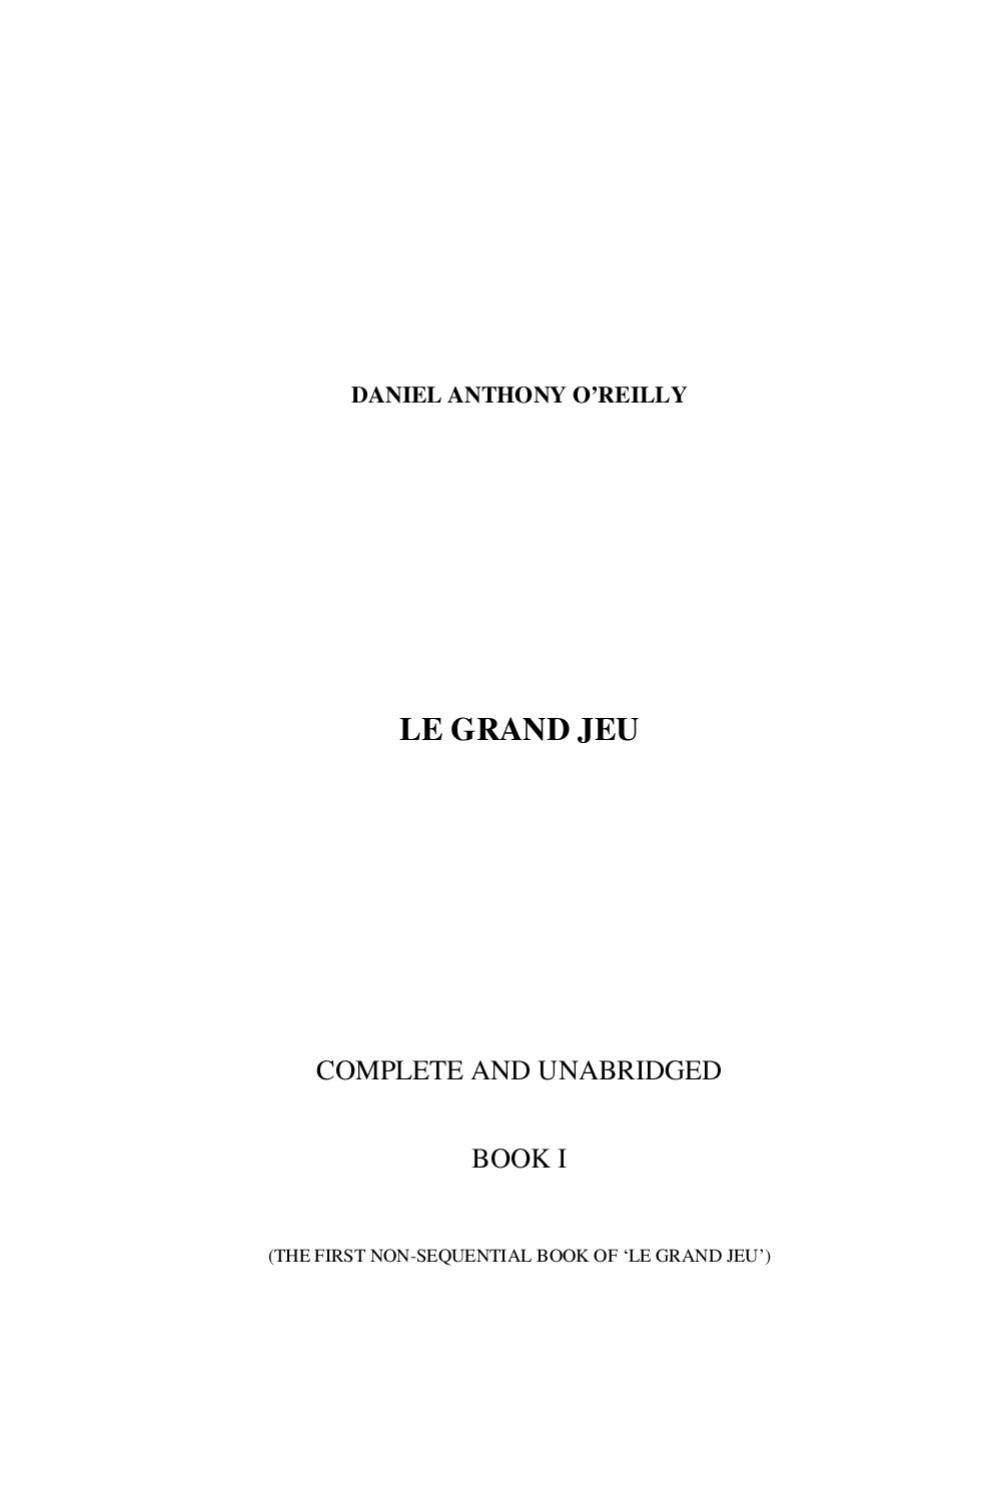 Outwitting The Devil Quotes Le Grand Jeu Part 1Marianna And Daniel O'reilly  Issuu